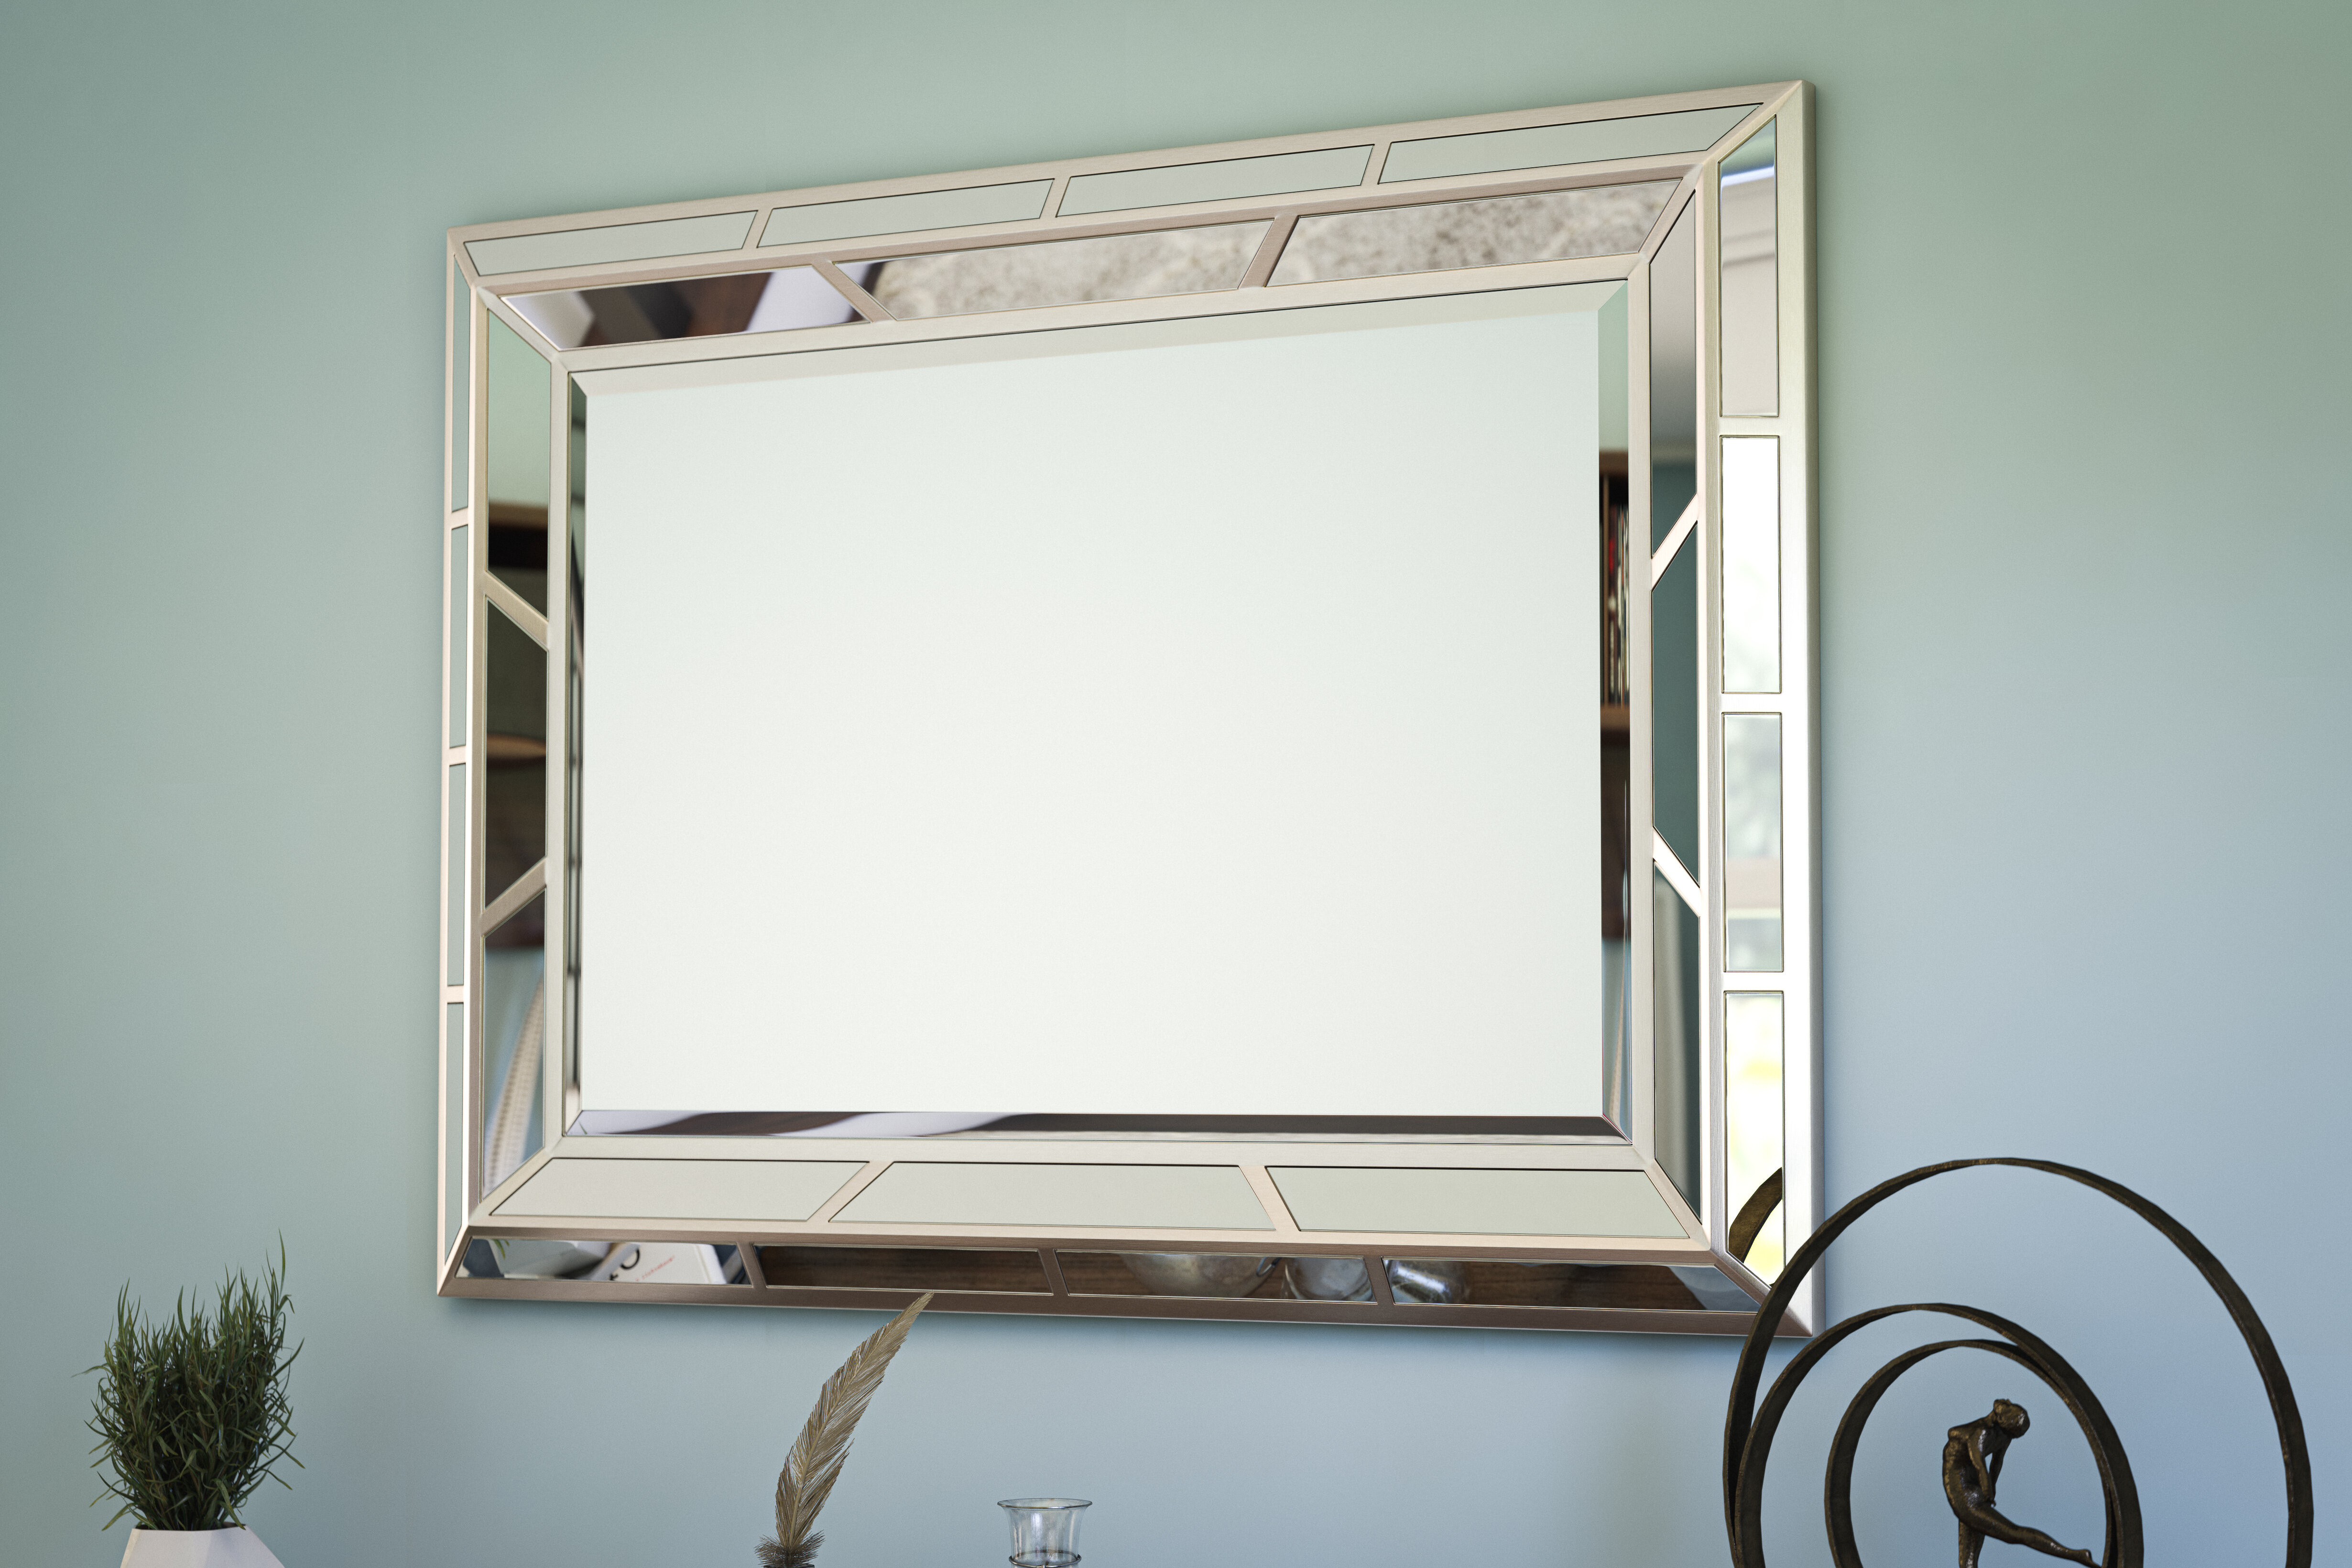 Lynn Accent Mirror Regarding Ansgar Accent Mirrors (View 10 of 20)